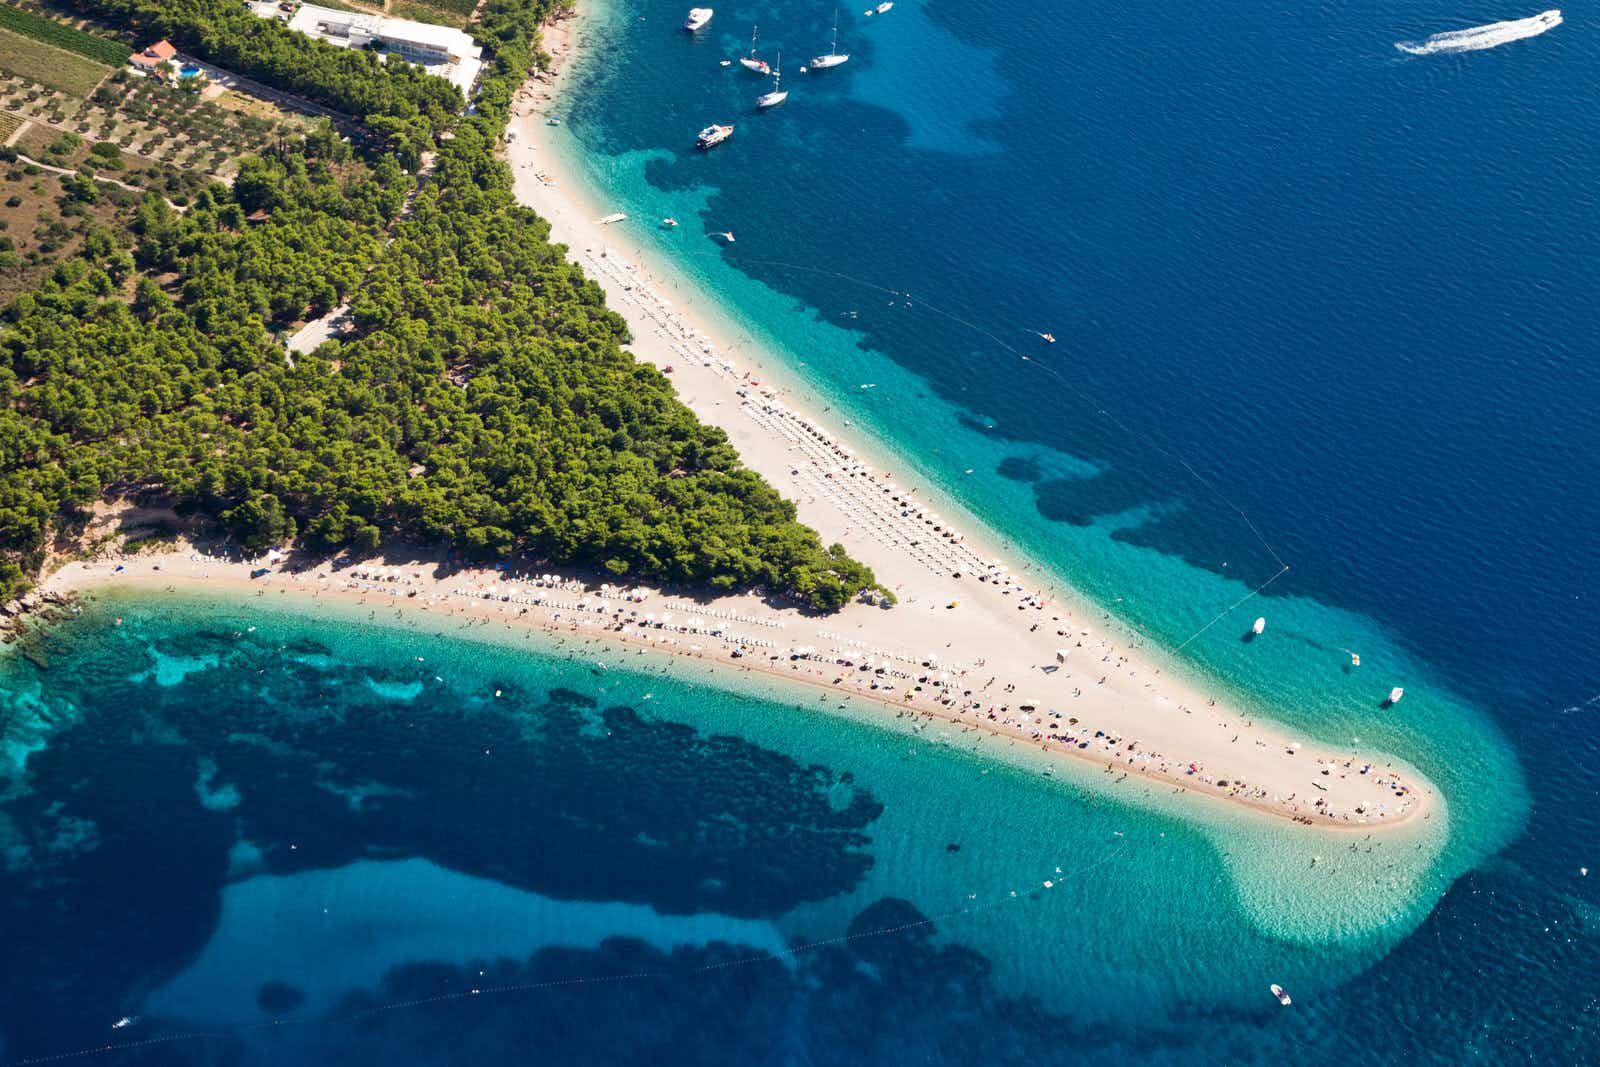 Shimmering strands and hidden coves: Croatia's 10 best beaches